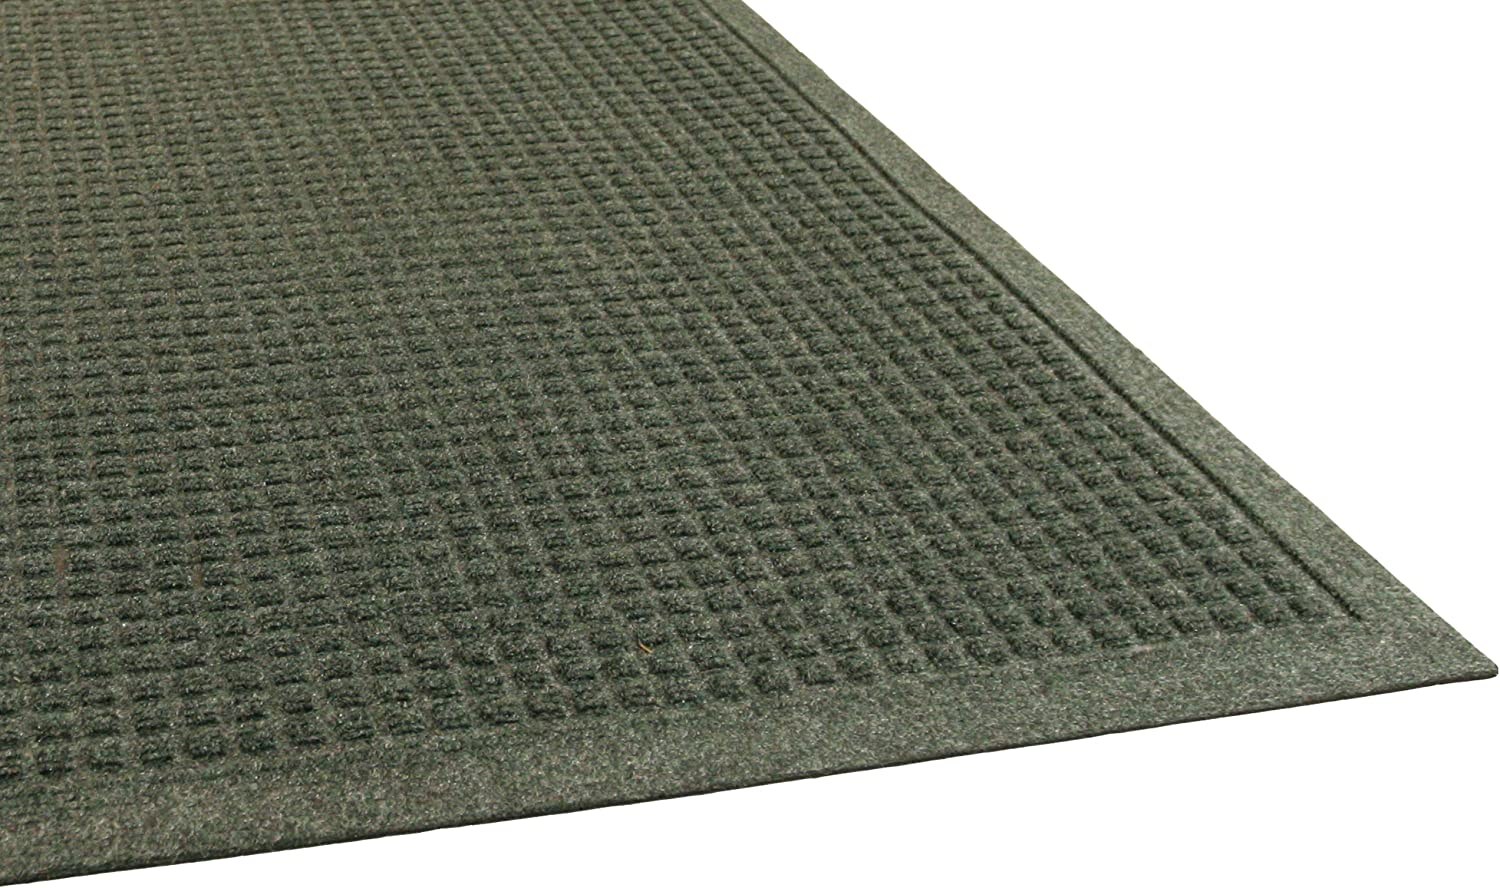 EcoGuard Indoor Wiper Floor Mat, Recycled Plactic and Rubber, 3' x 4', Green, 1